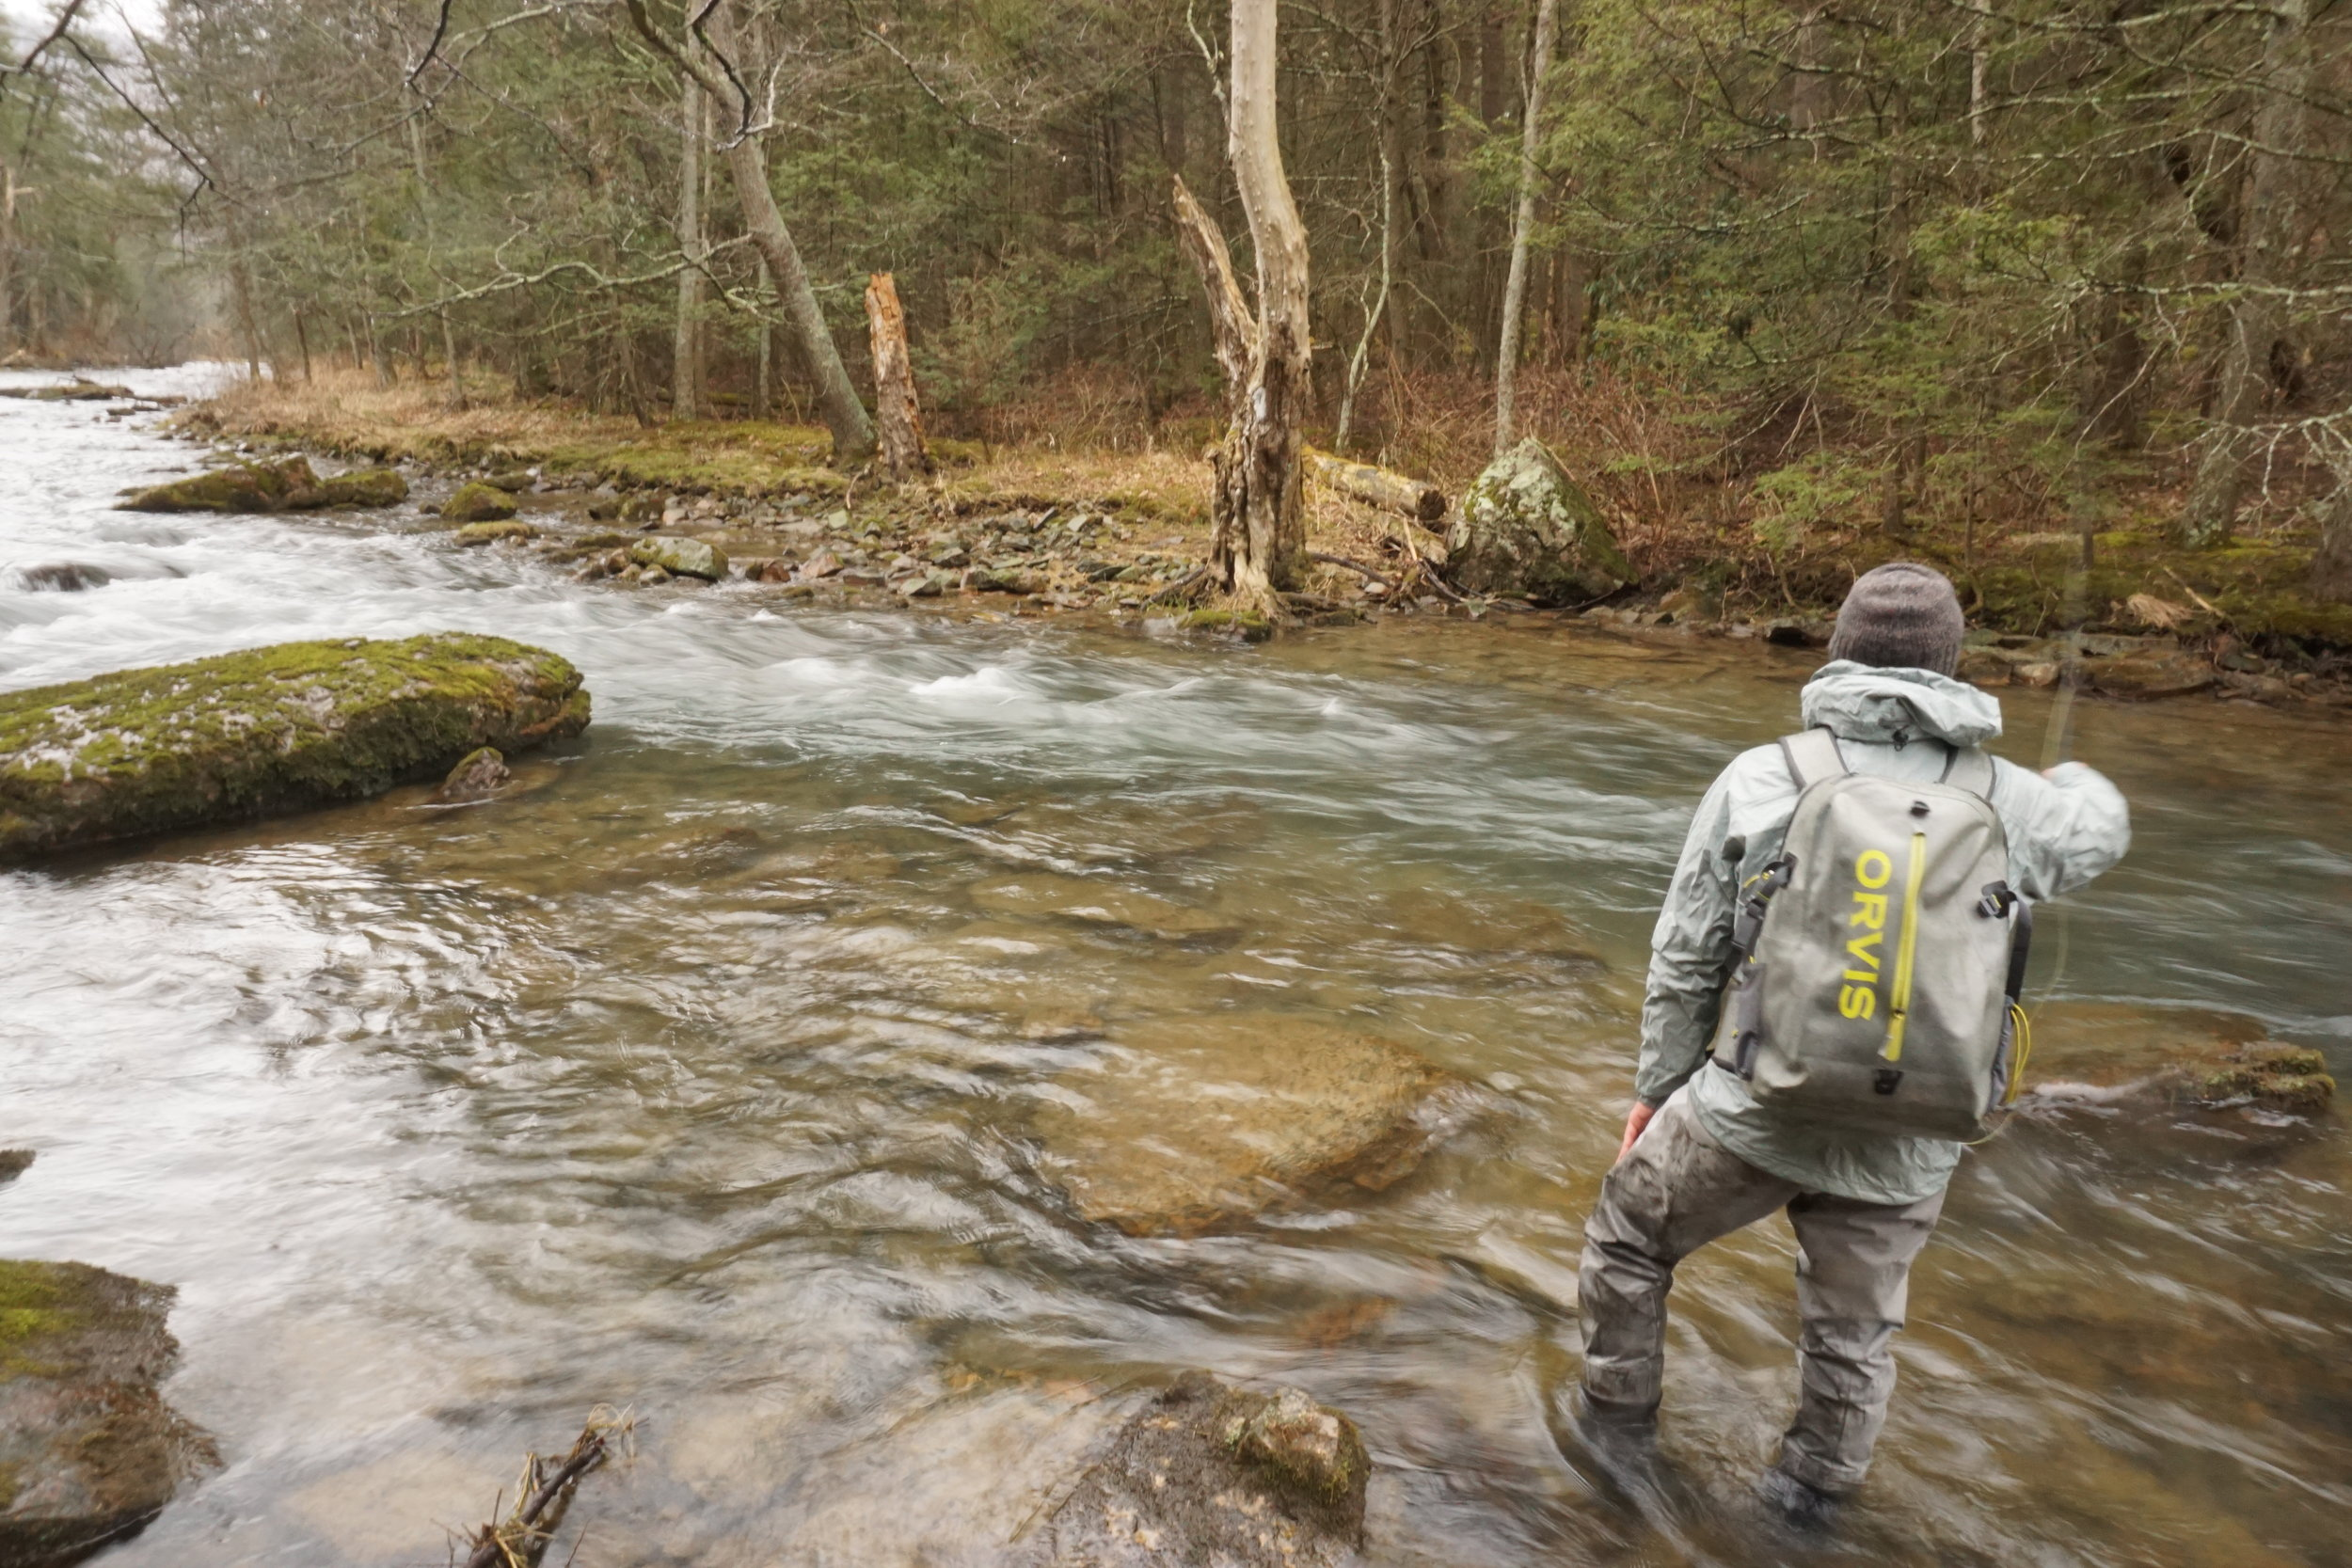 Hitting the Head is a good approach during peak insect activity when trout position themselves at the head of the runs to intercept drifting insects.